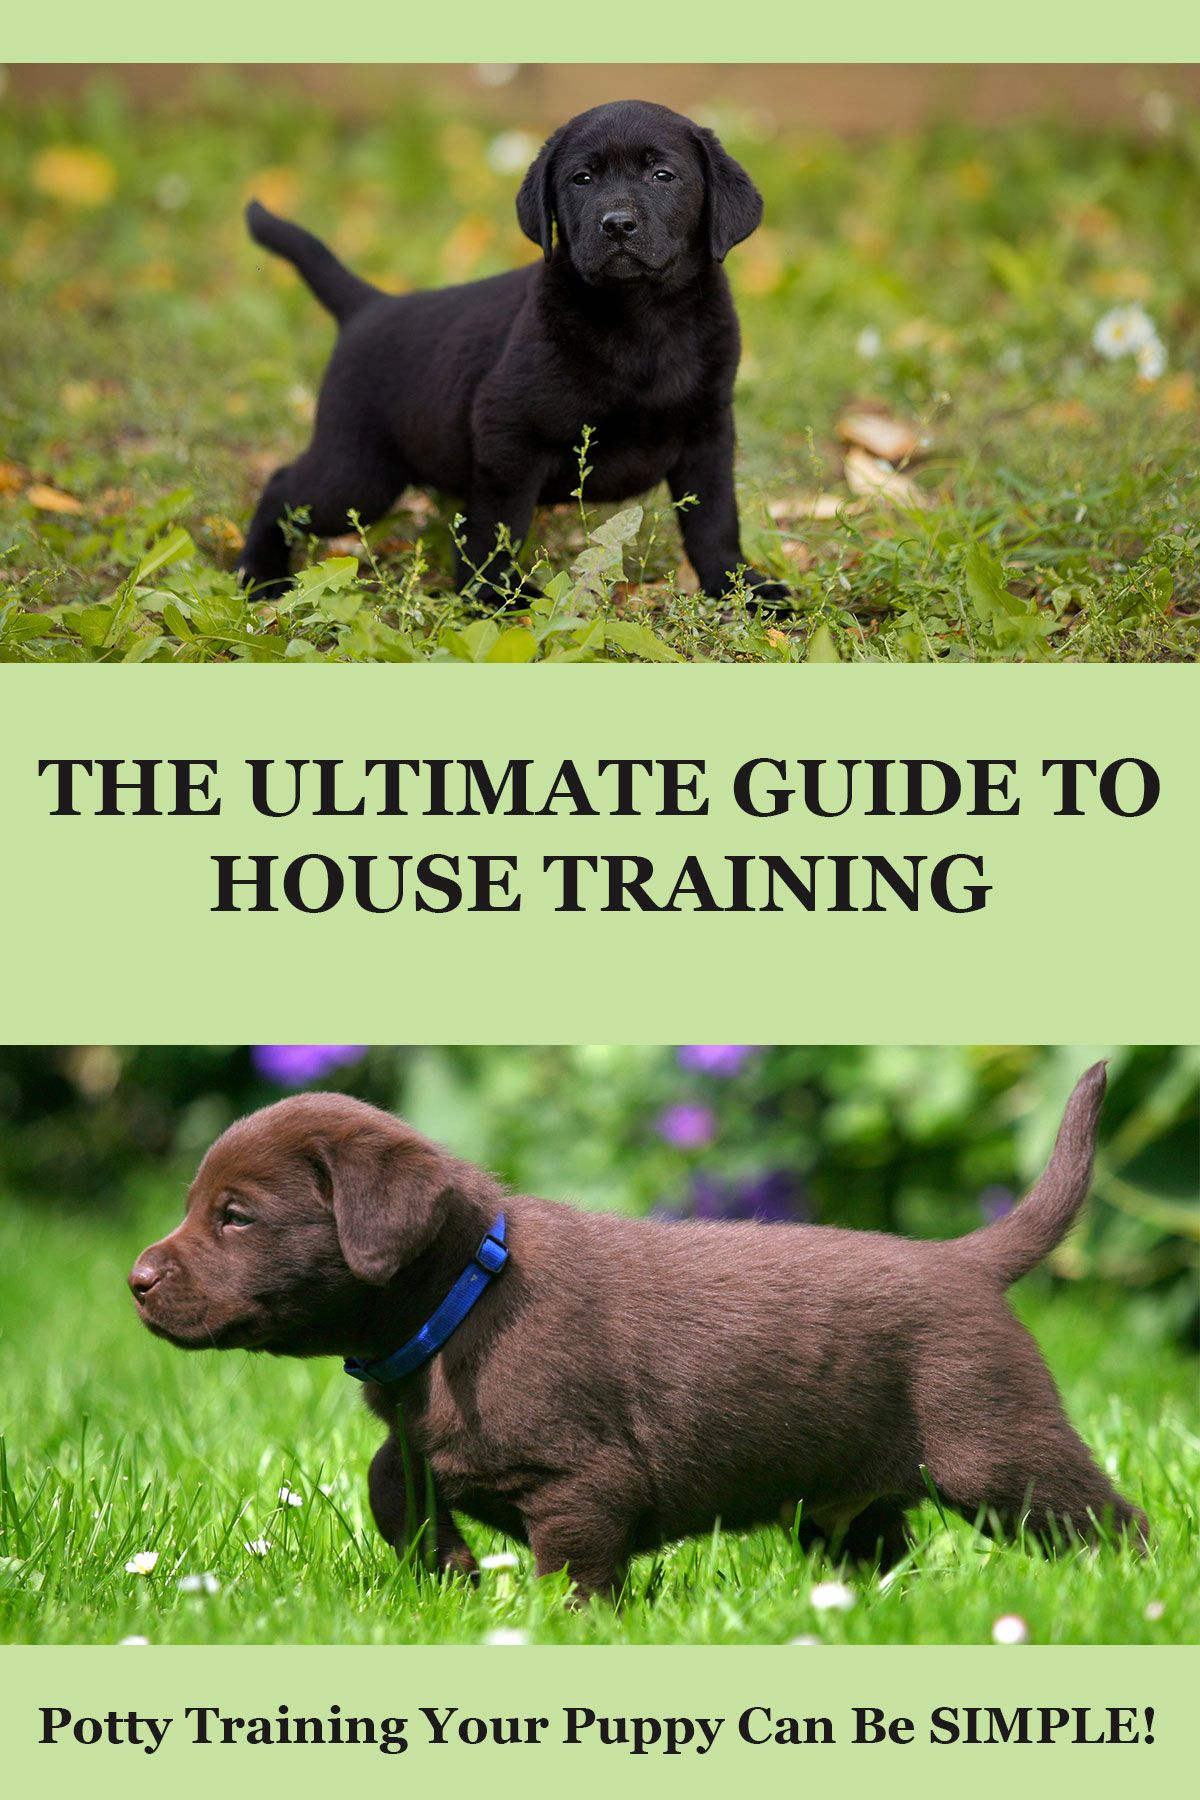 How To Potty Train A Puppy | Labradors, House and Dog | How Do You Potty Train A Dog